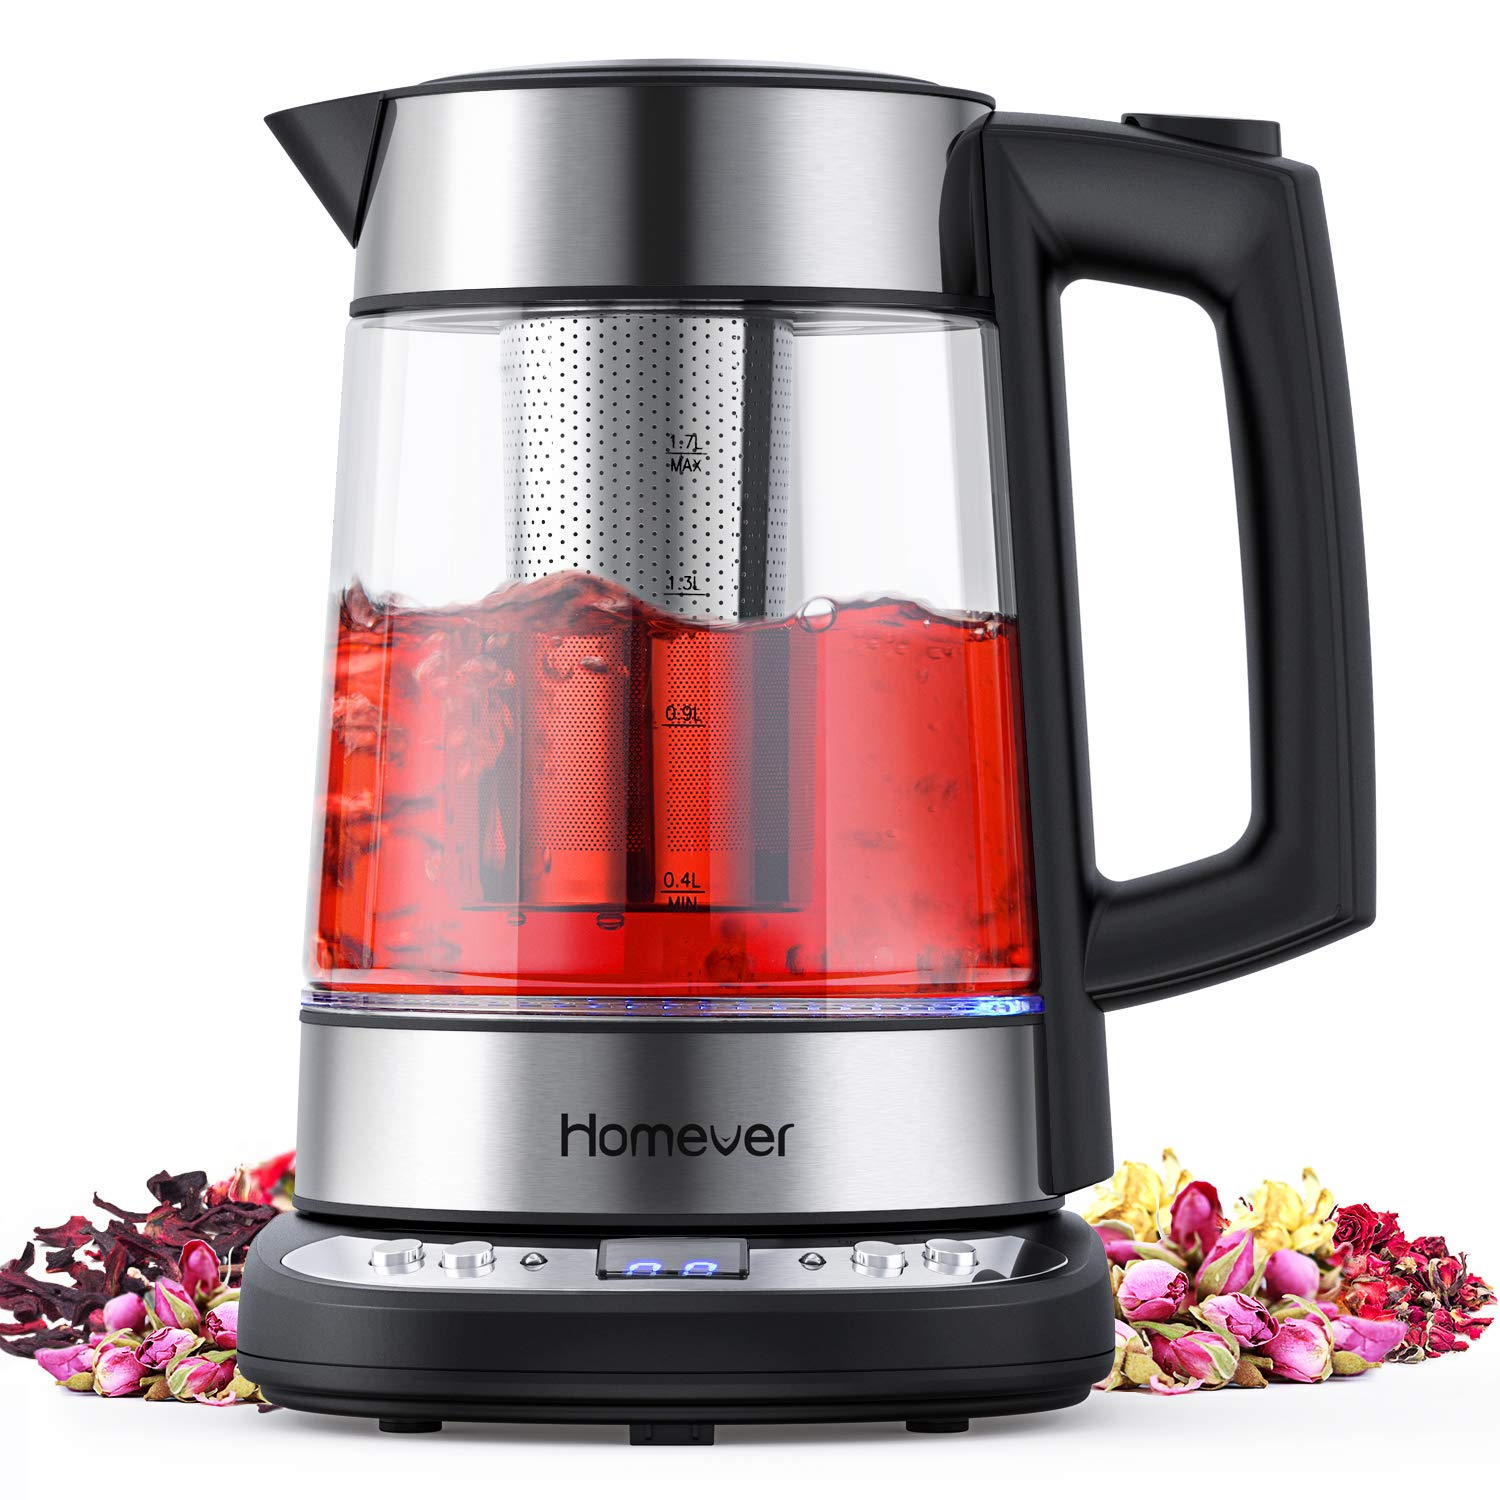 £20 OFF Homever Thermostatic Kettle